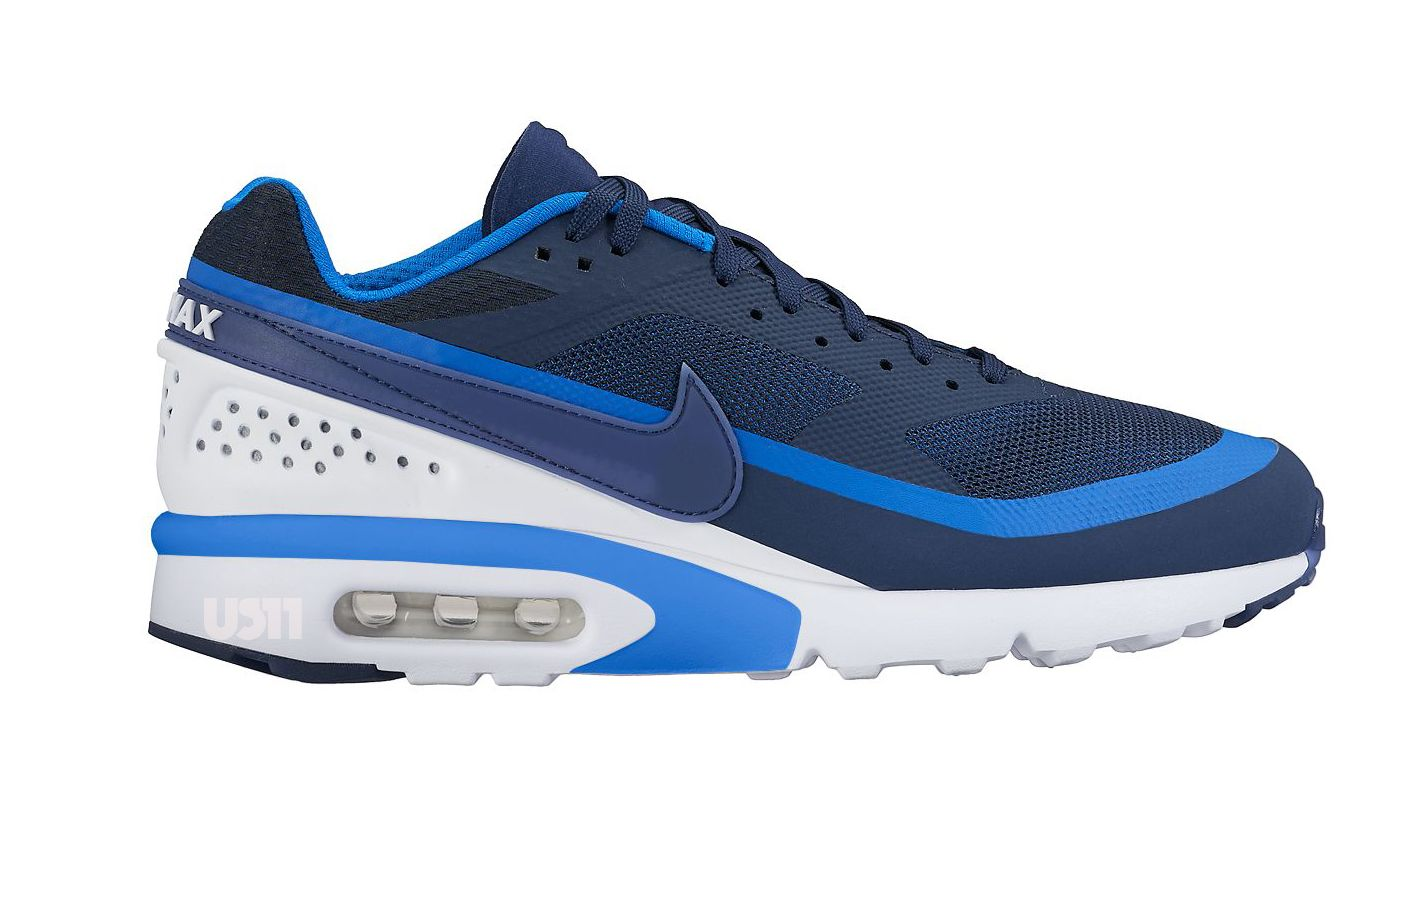 promo code beb5b 96a03 ... coupon code for regal blue navy blue white 1992 nike air classic bw  persian violet a6260